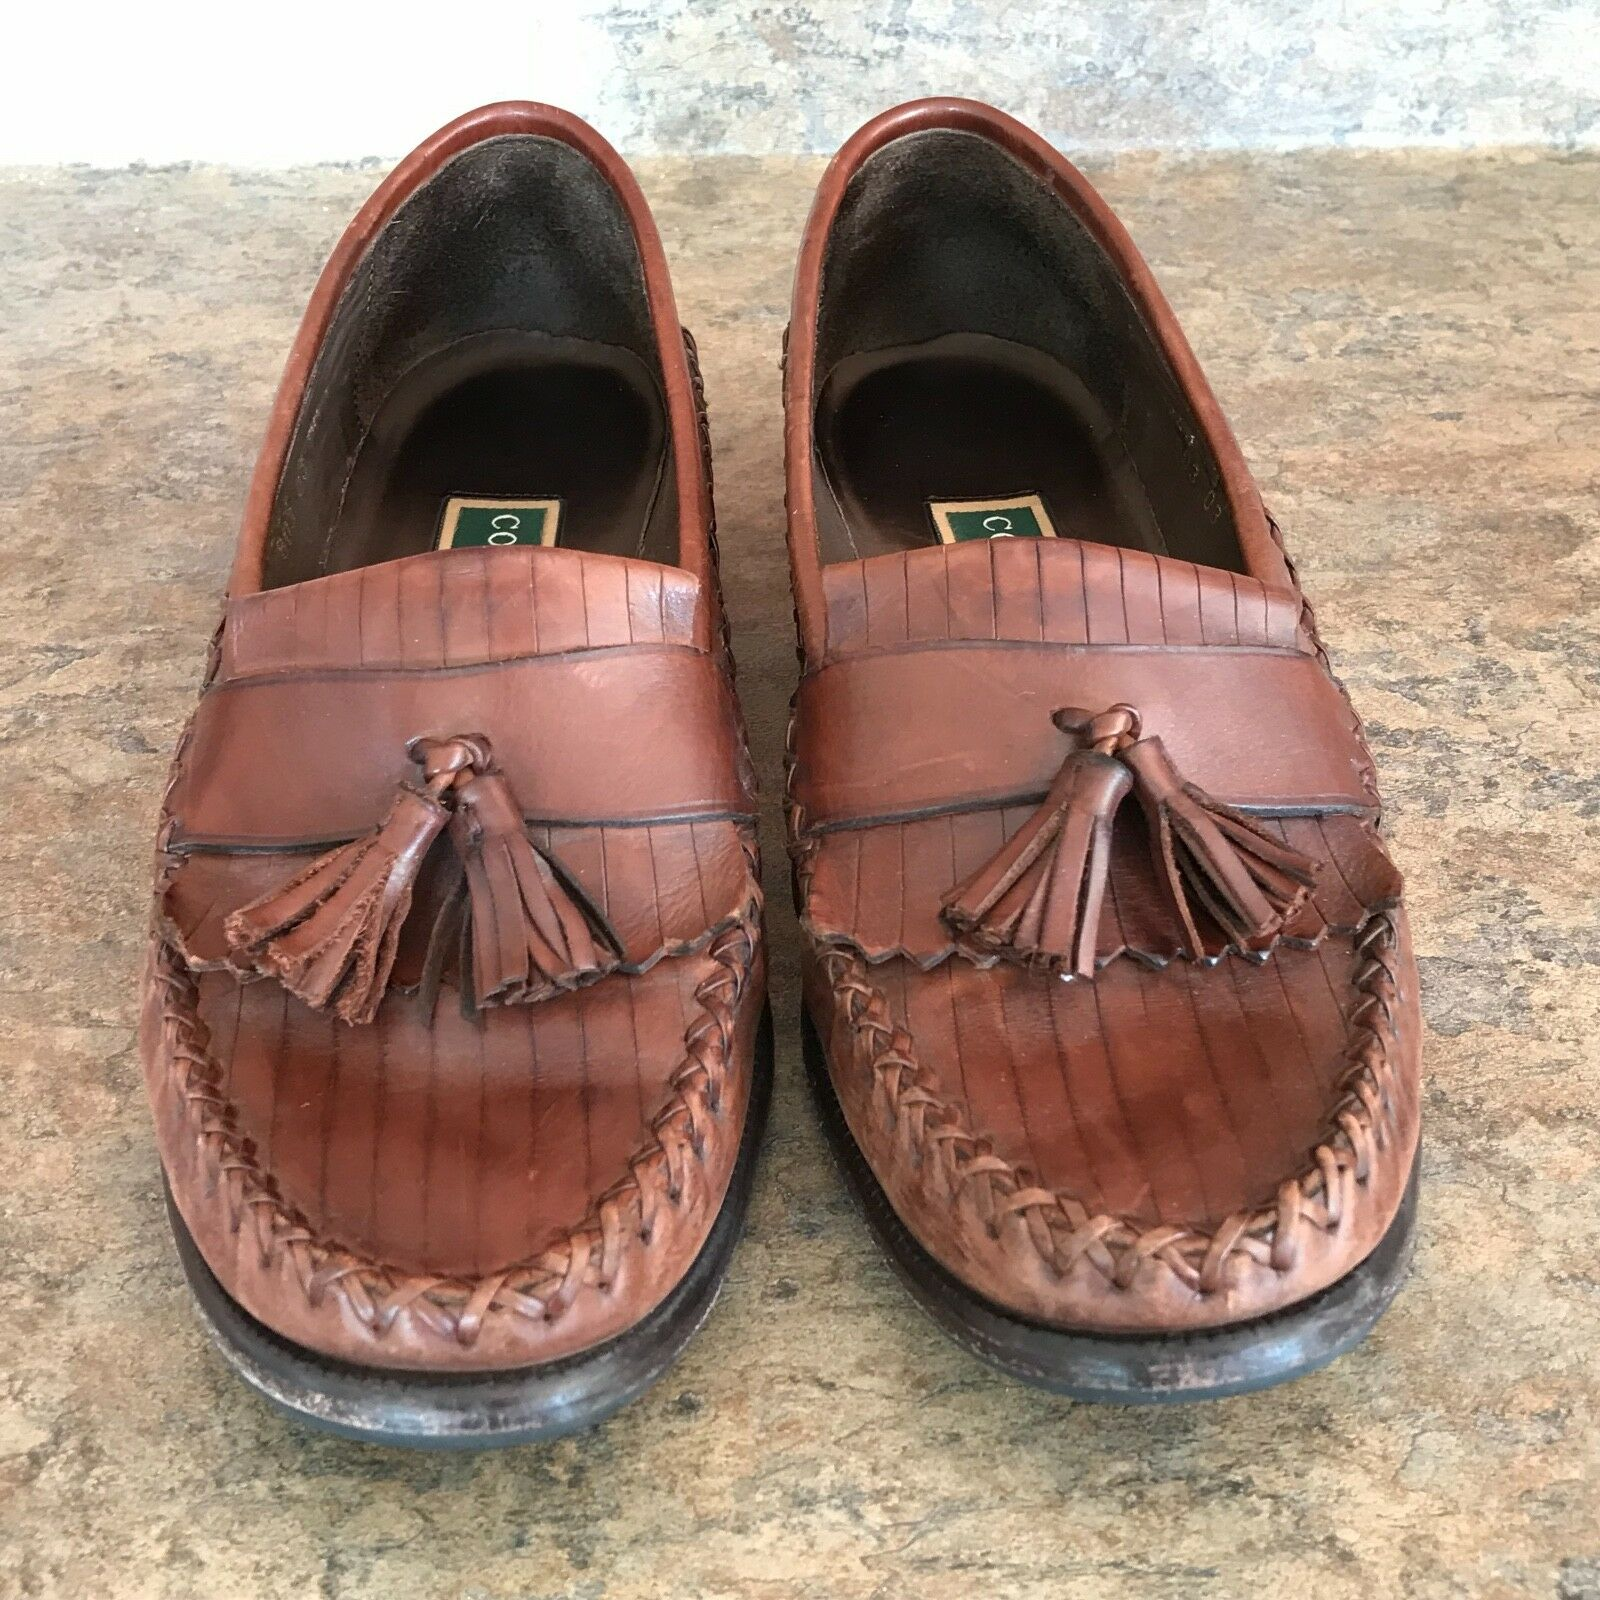 Cole Haan Woven Woven Woven Leather Loafers Tassel Brown Mahogany size 9AA Leticia shoes ee7168